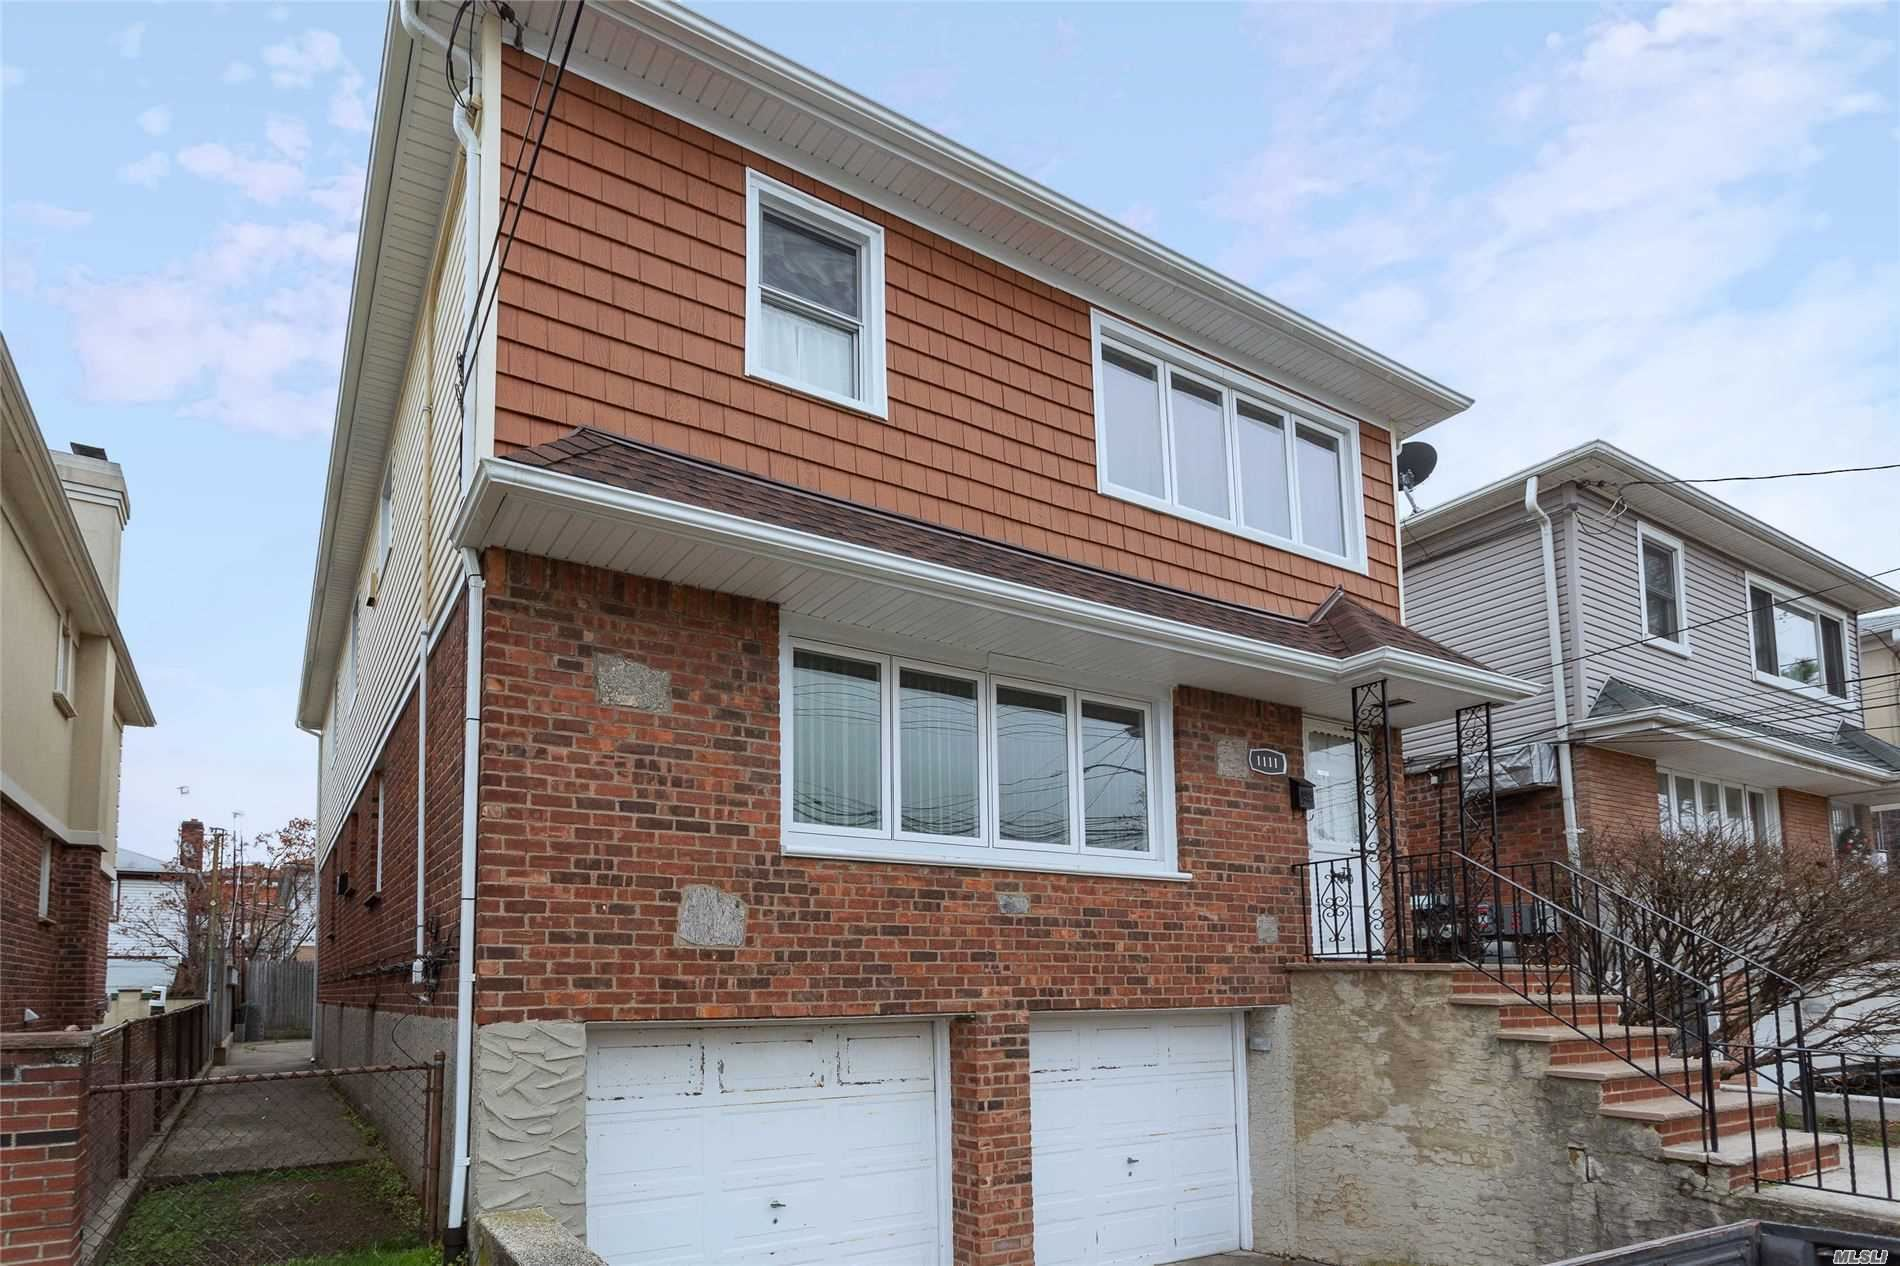 11-11 129th Street #1, College Point, NY 11356 - MLS#: 3186070